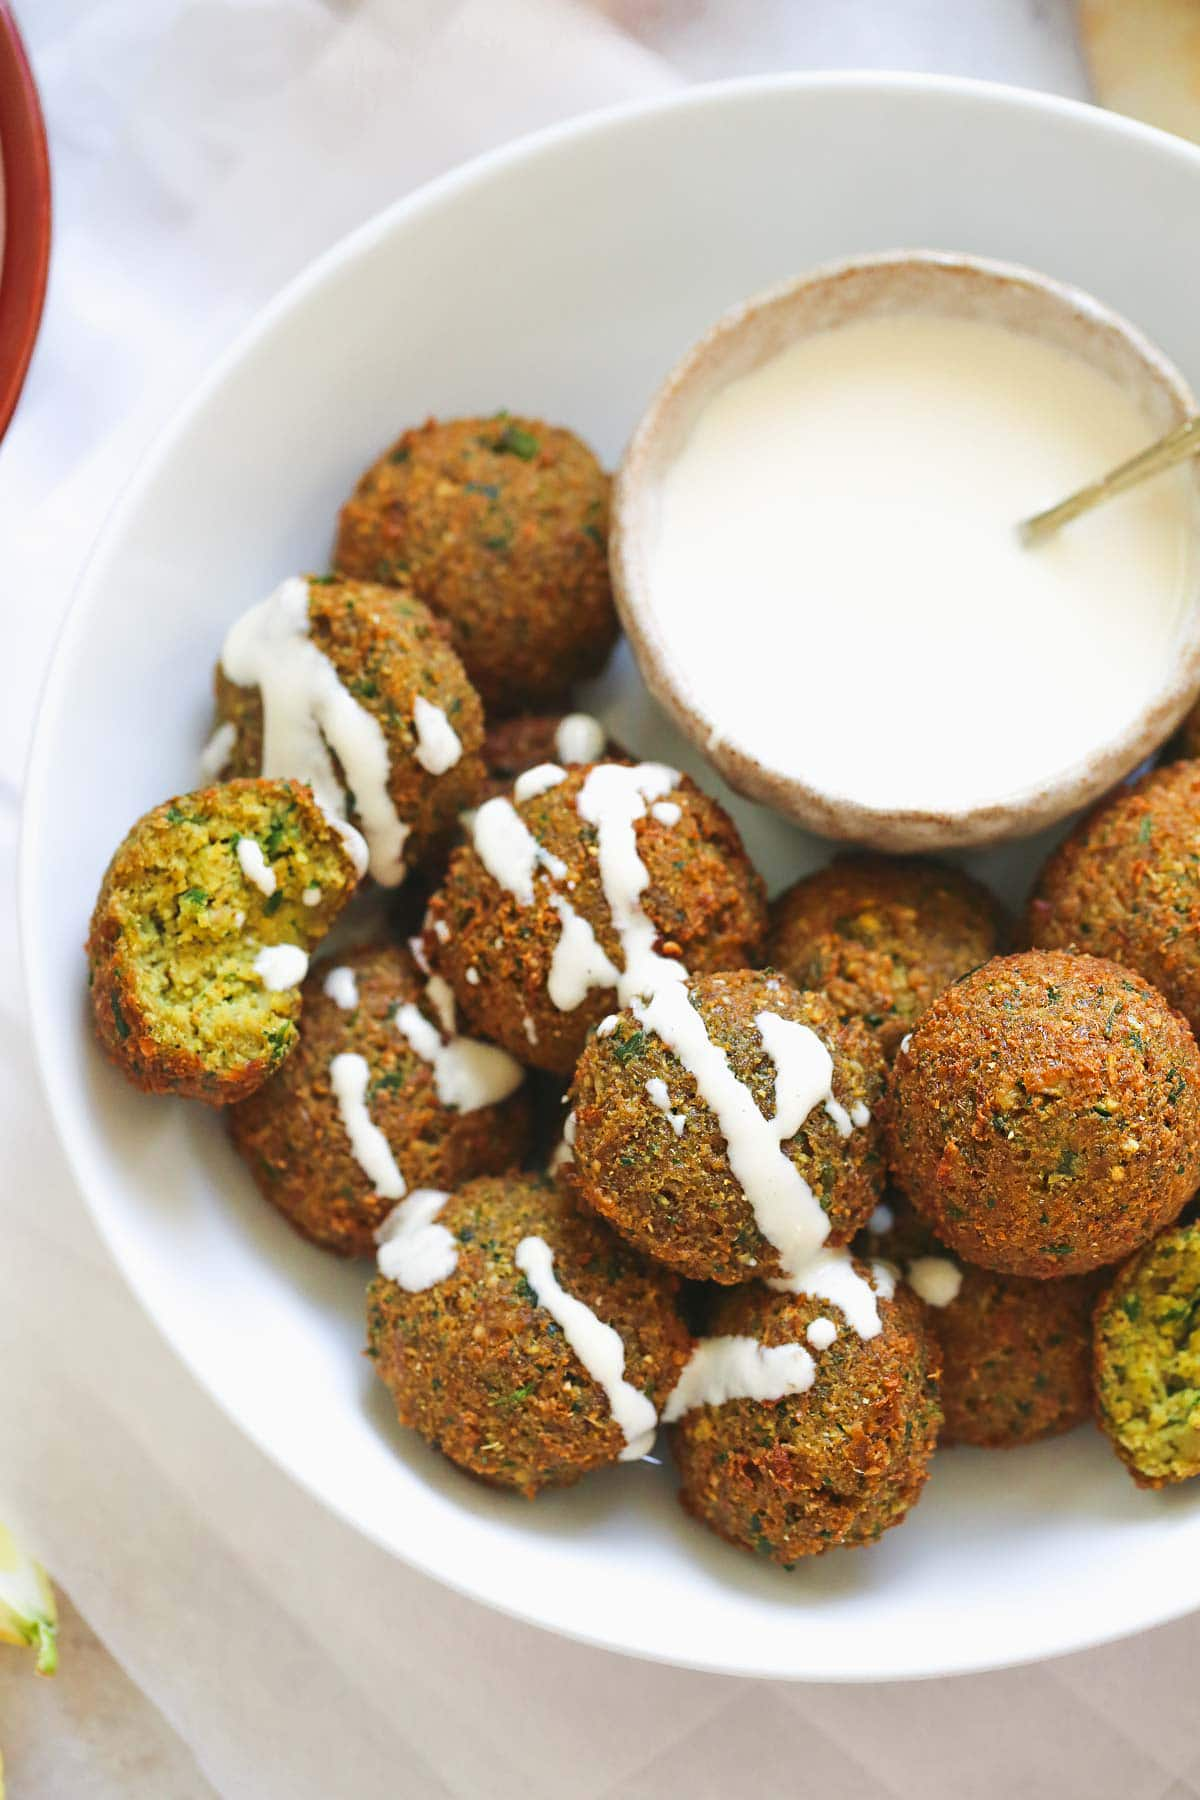 falafel with tahini sauce drizzled over the falafel balls